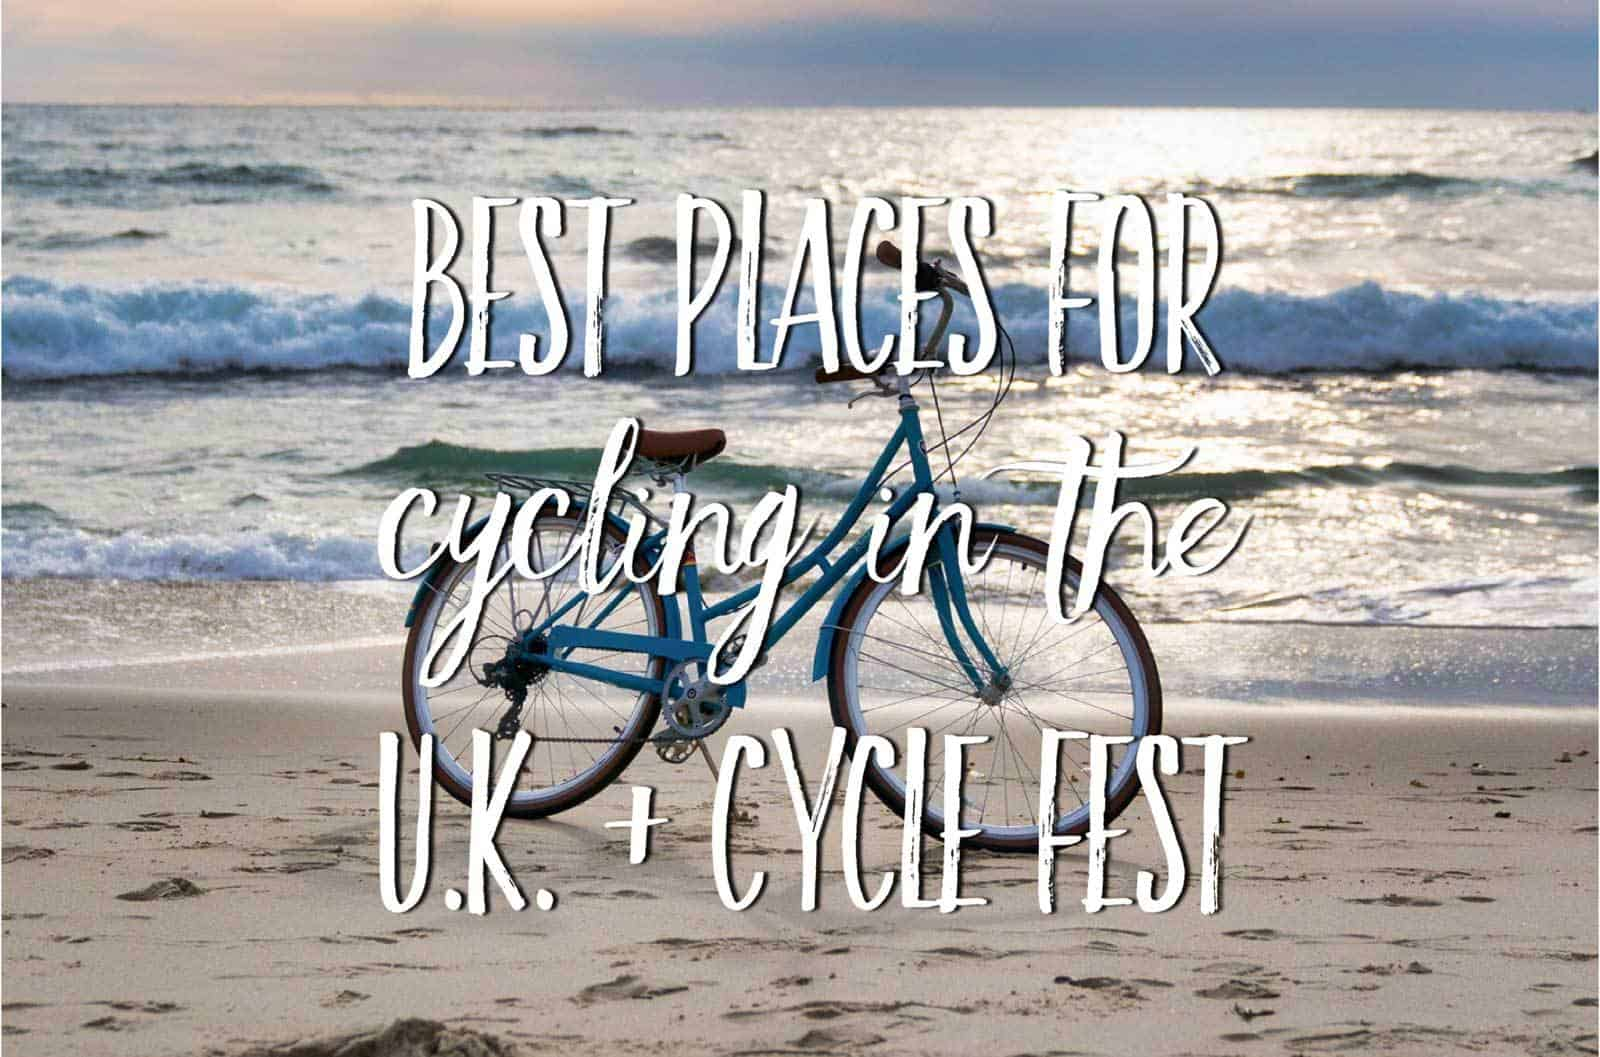 best places for cycling in the UK - Cycle Fest / Experience Freedom